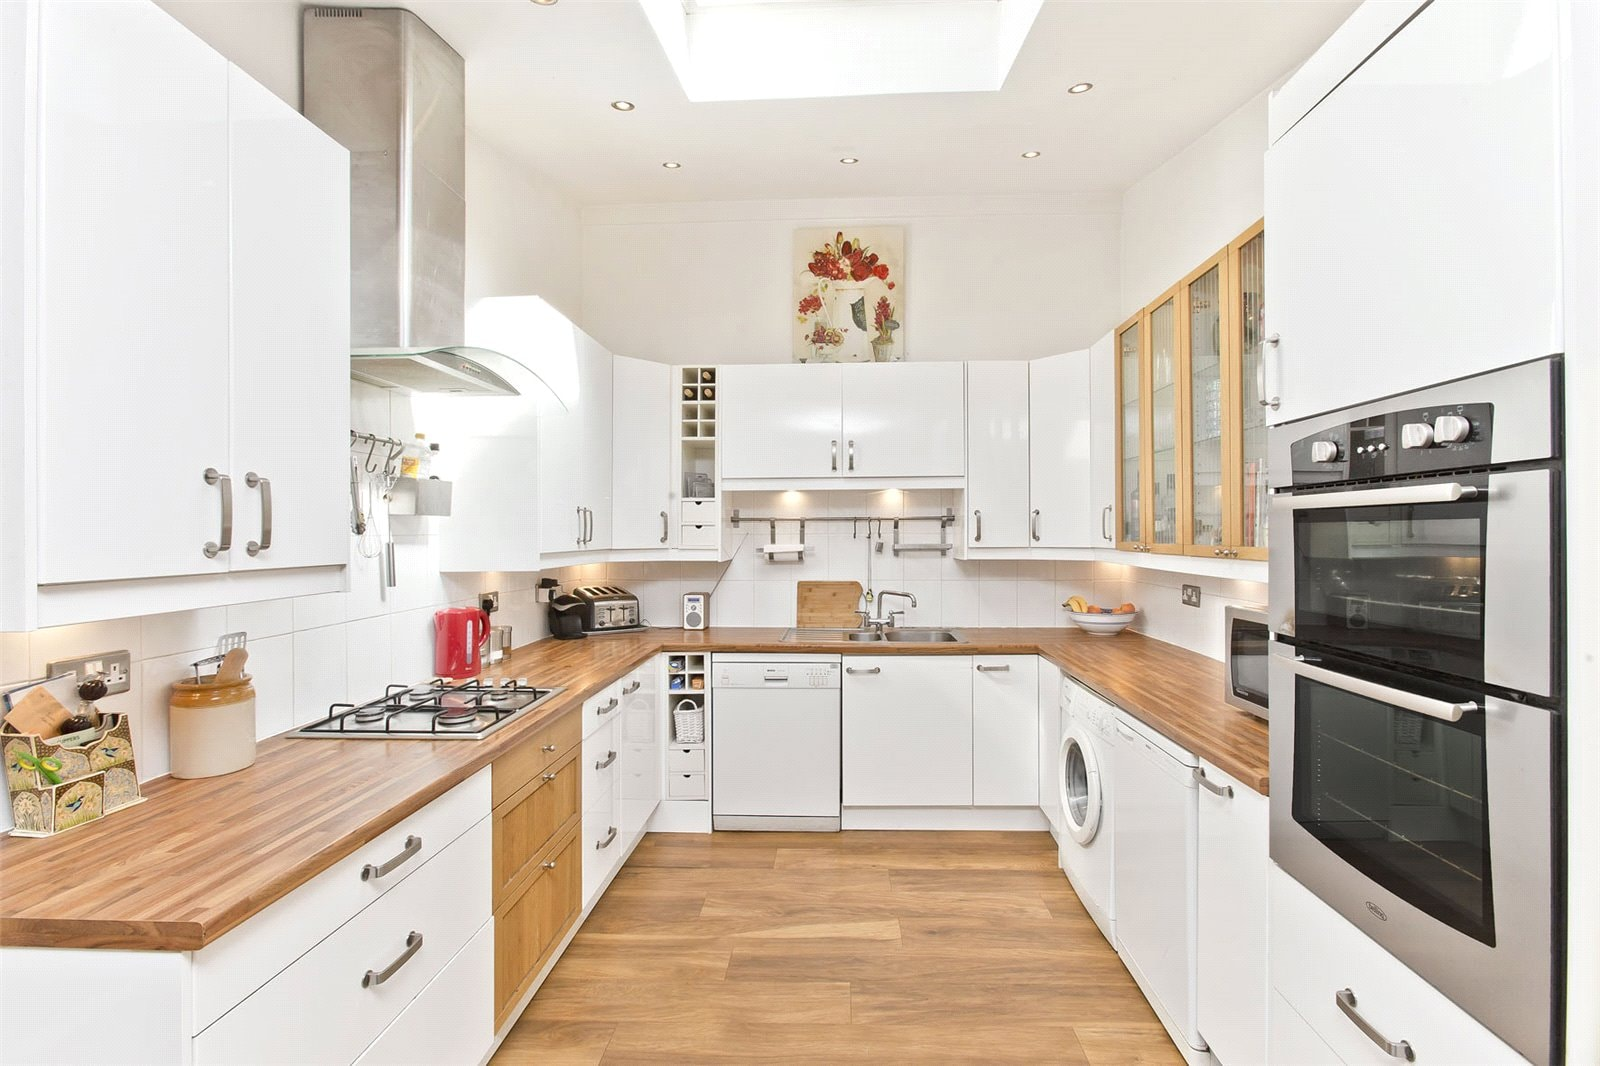 Perth Property of the Week: 18 Queens Road